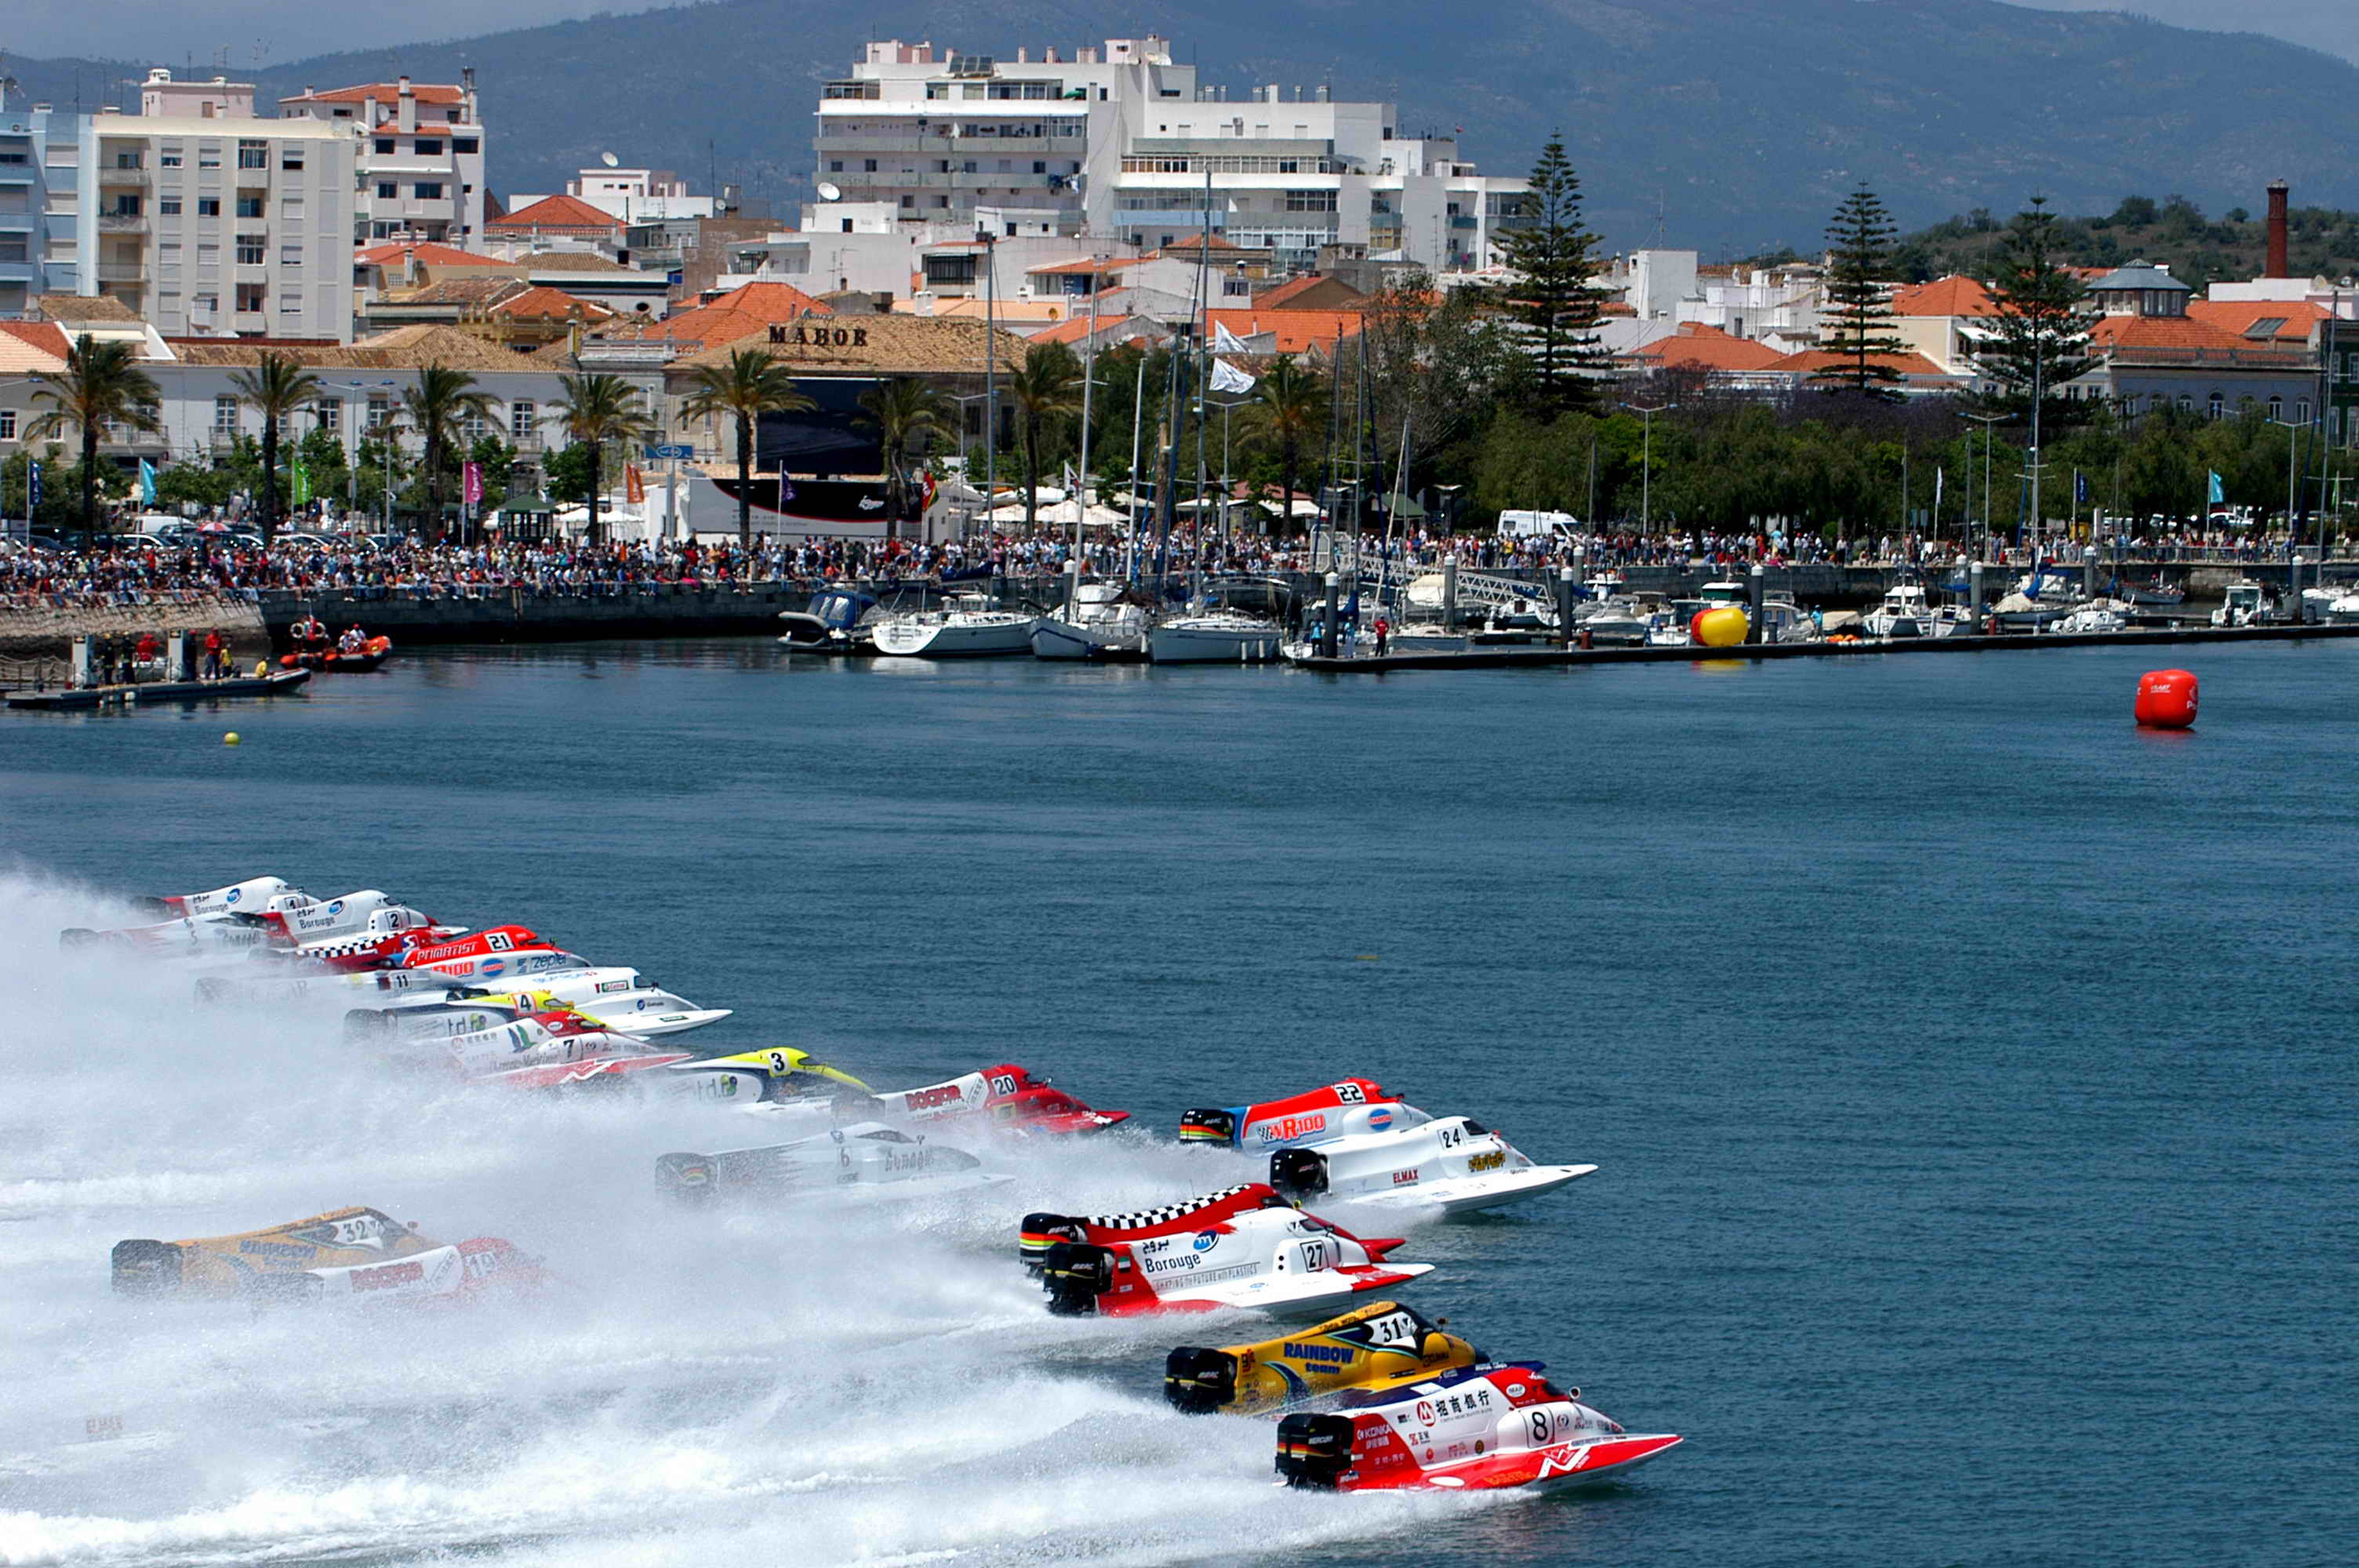 F1 Powerboat World Championshis - Portimao Race | Top Speed